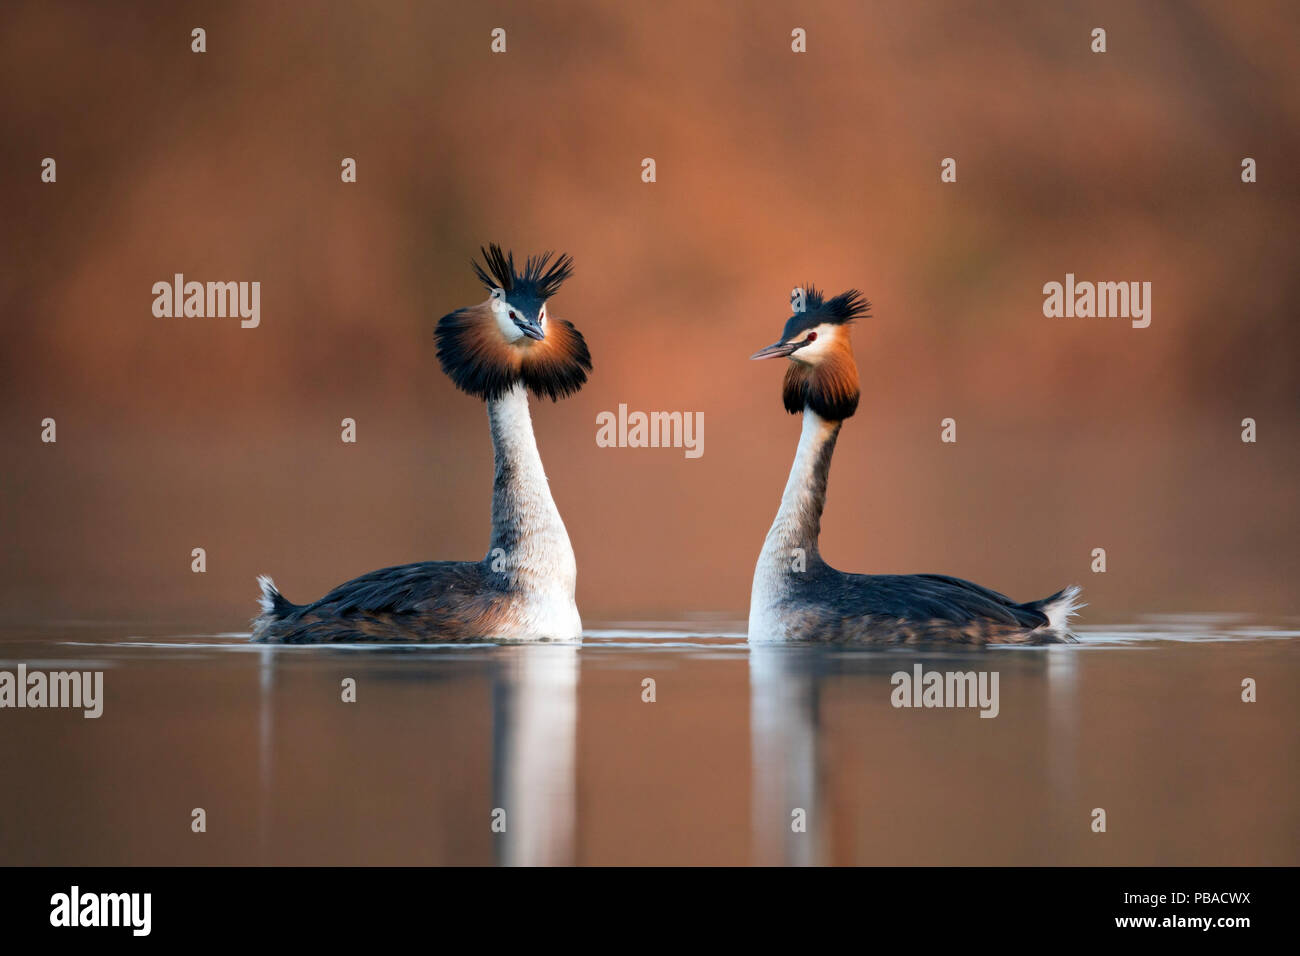 Great crested grebe (Podiceps cristatus) pair performing their courtship dance in which they mimic each other's movements. The Netherlands. April. - Stock Image